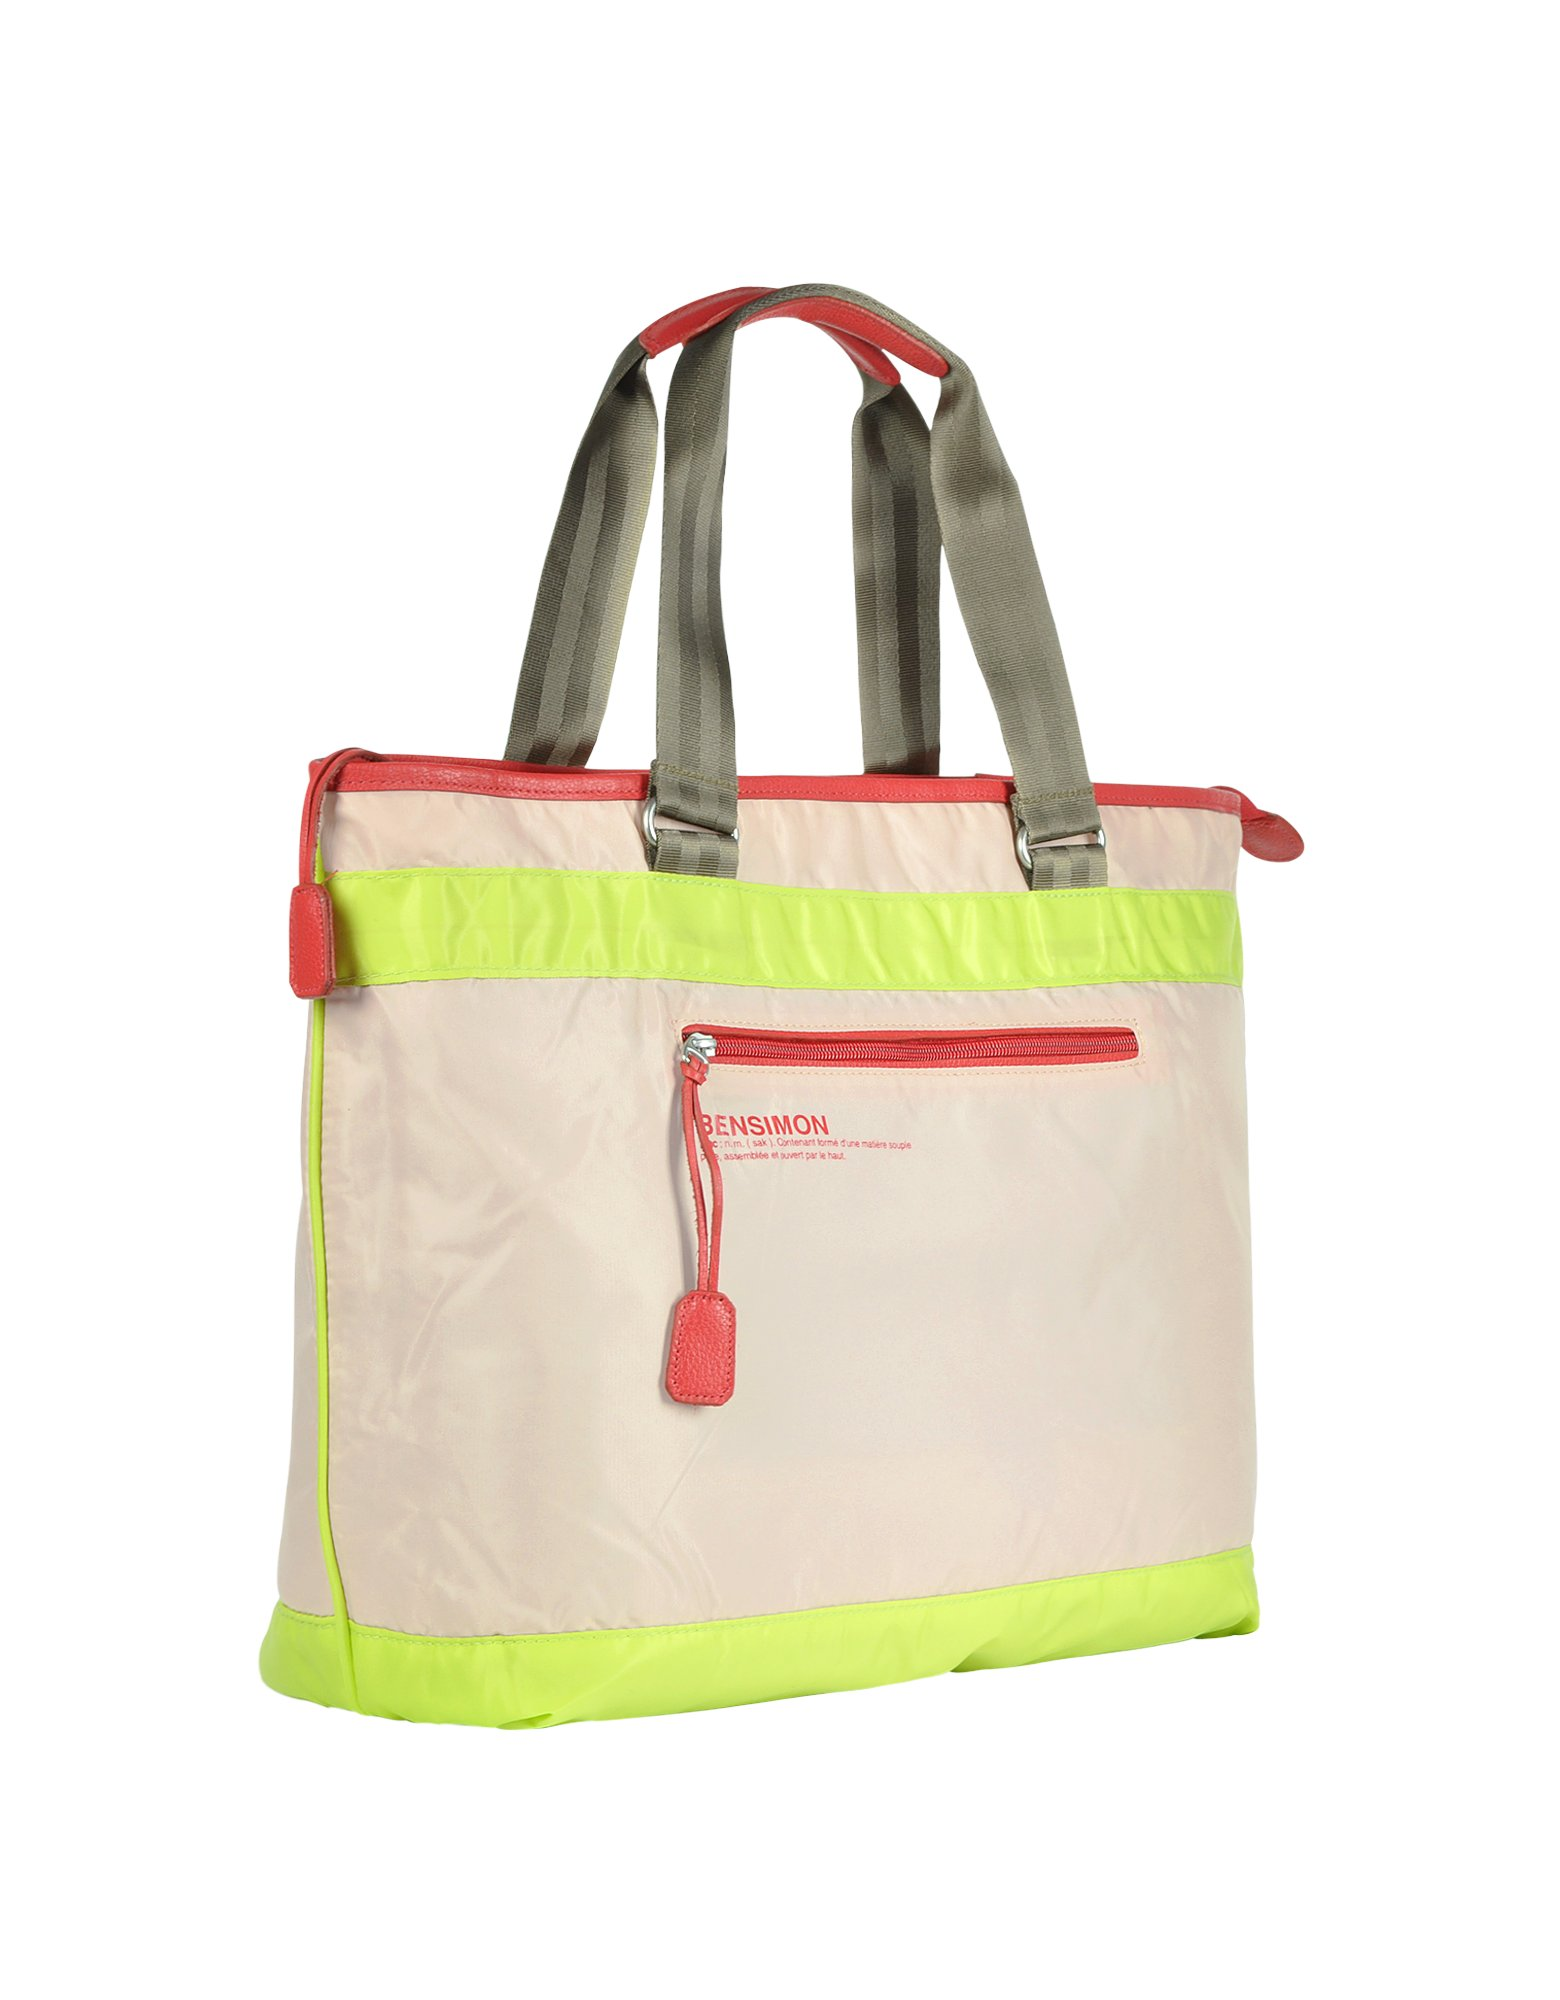 Bensimon Neon Line Large Nylon Zippered Tote Bag in Pink | Lyst